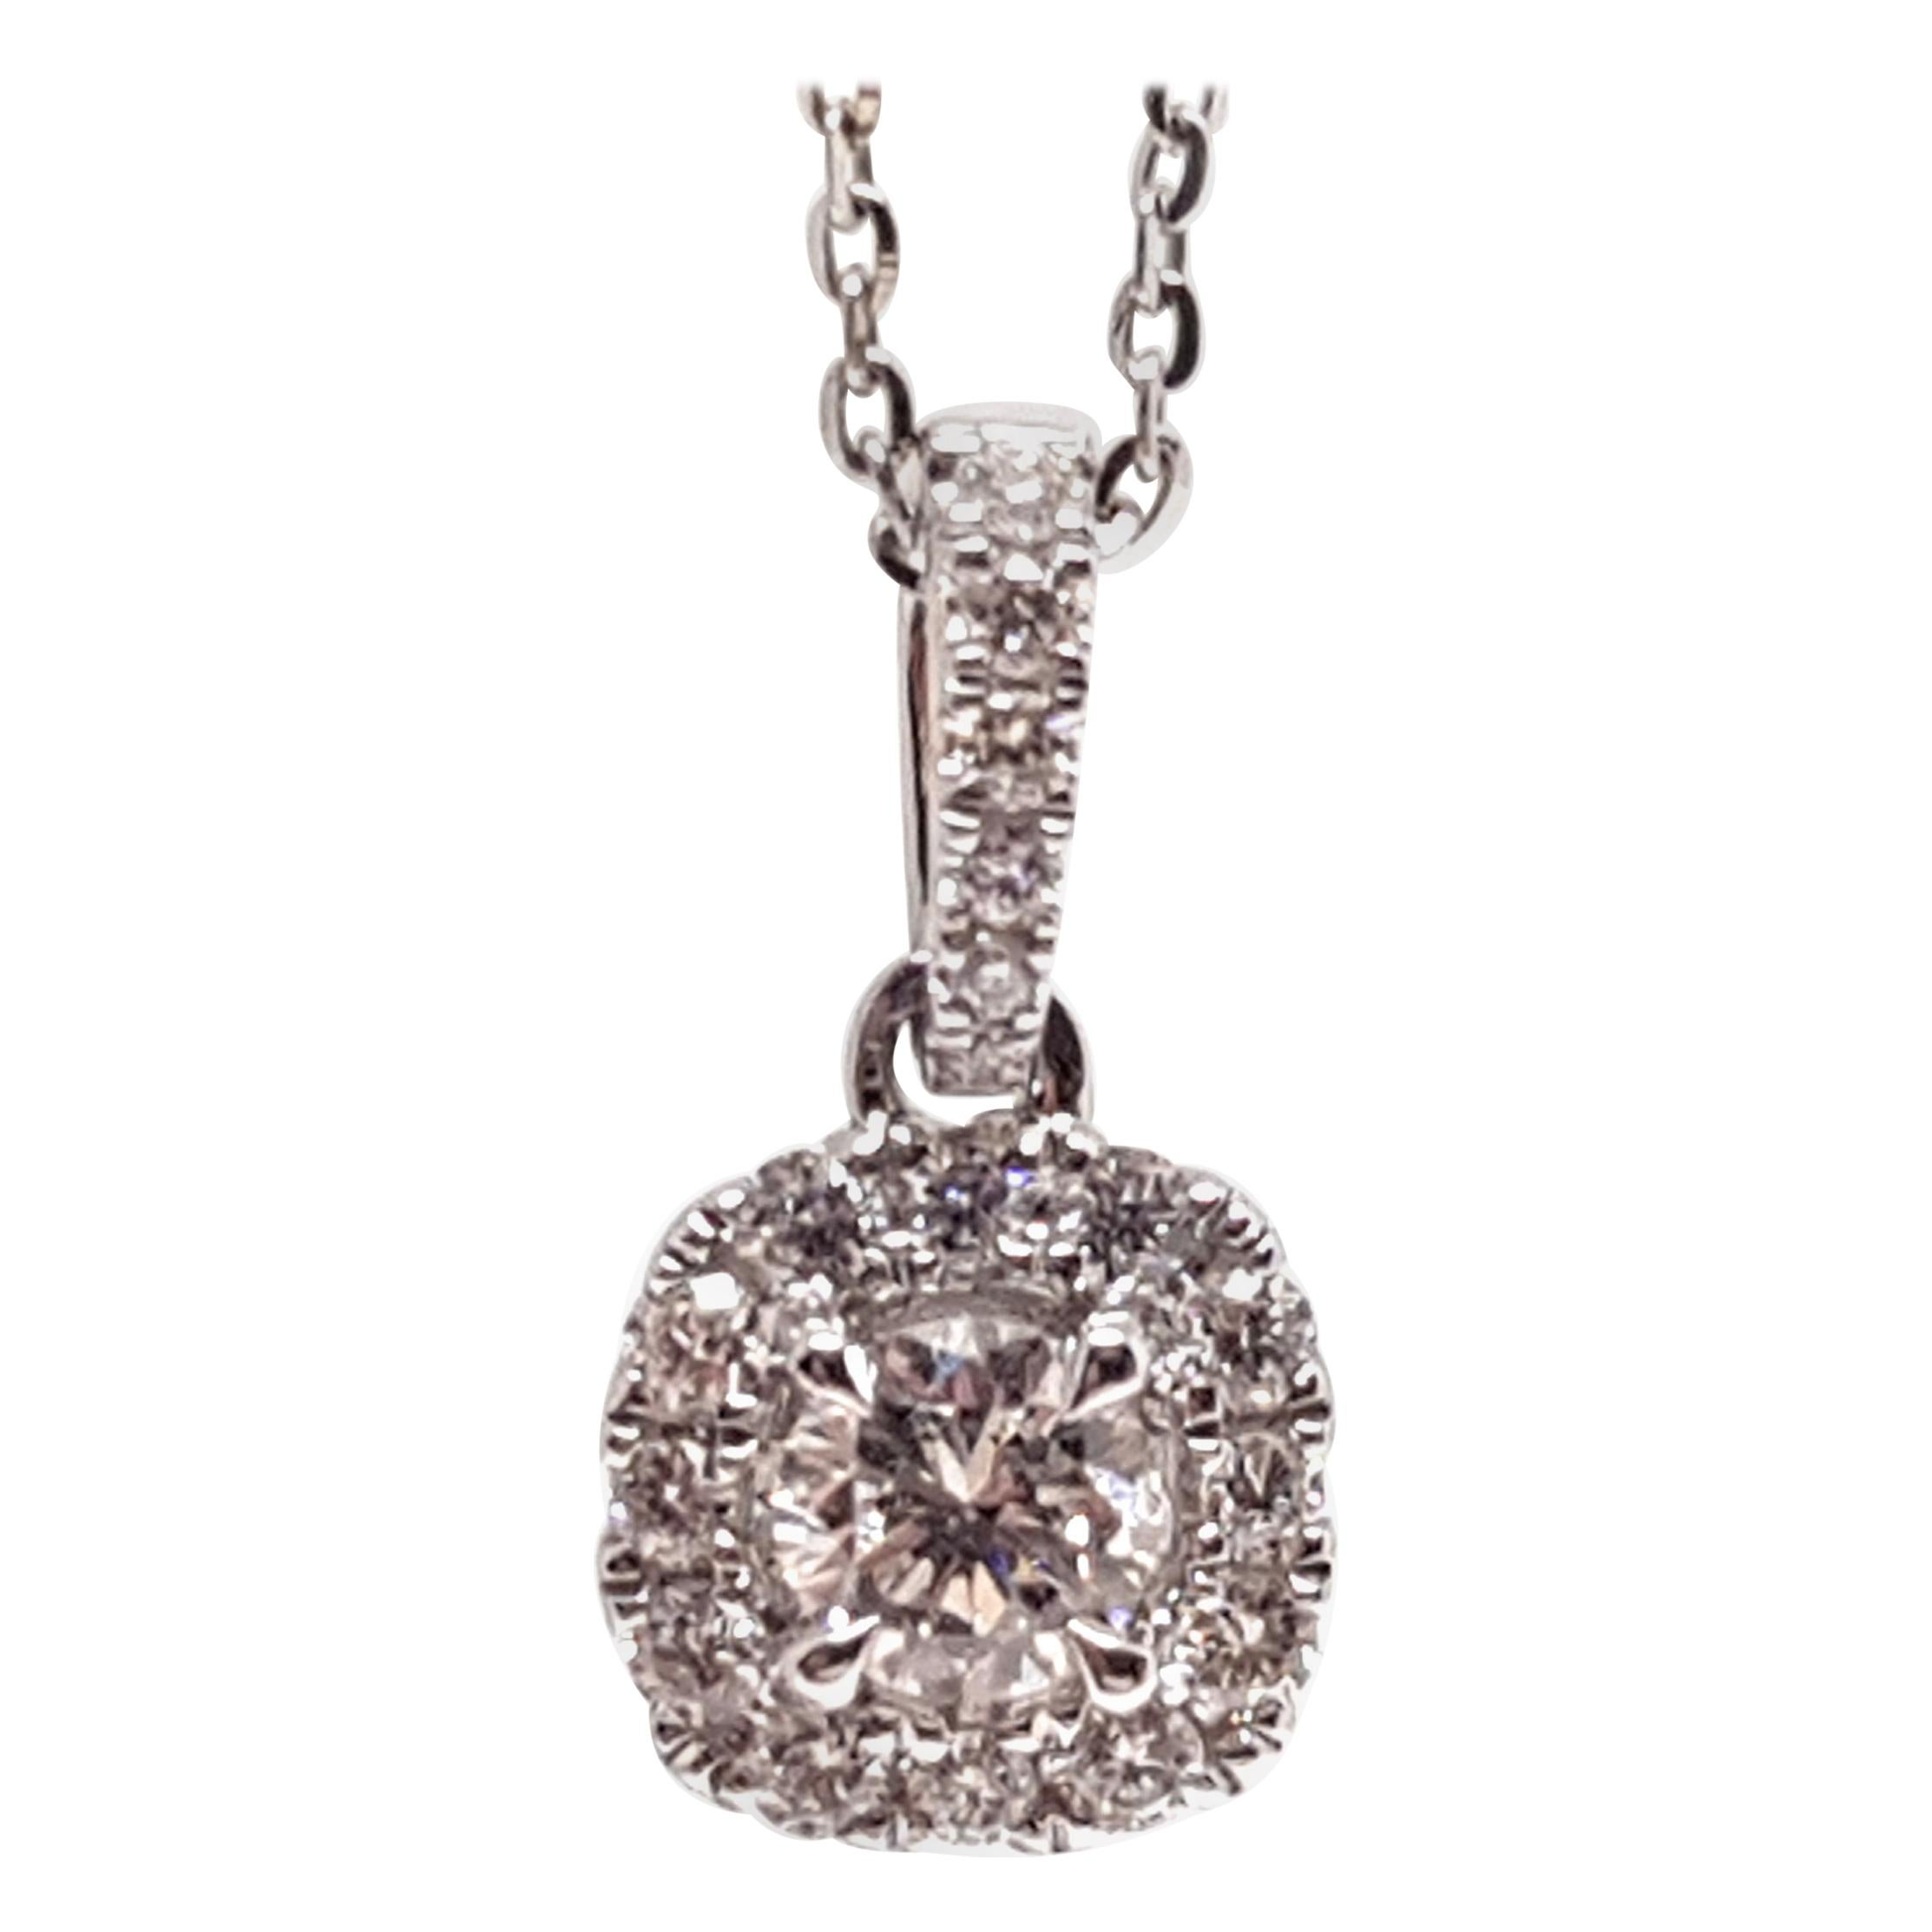 0.83 Carat White Gold Necklace Diamond Halo Solitaire Pendant